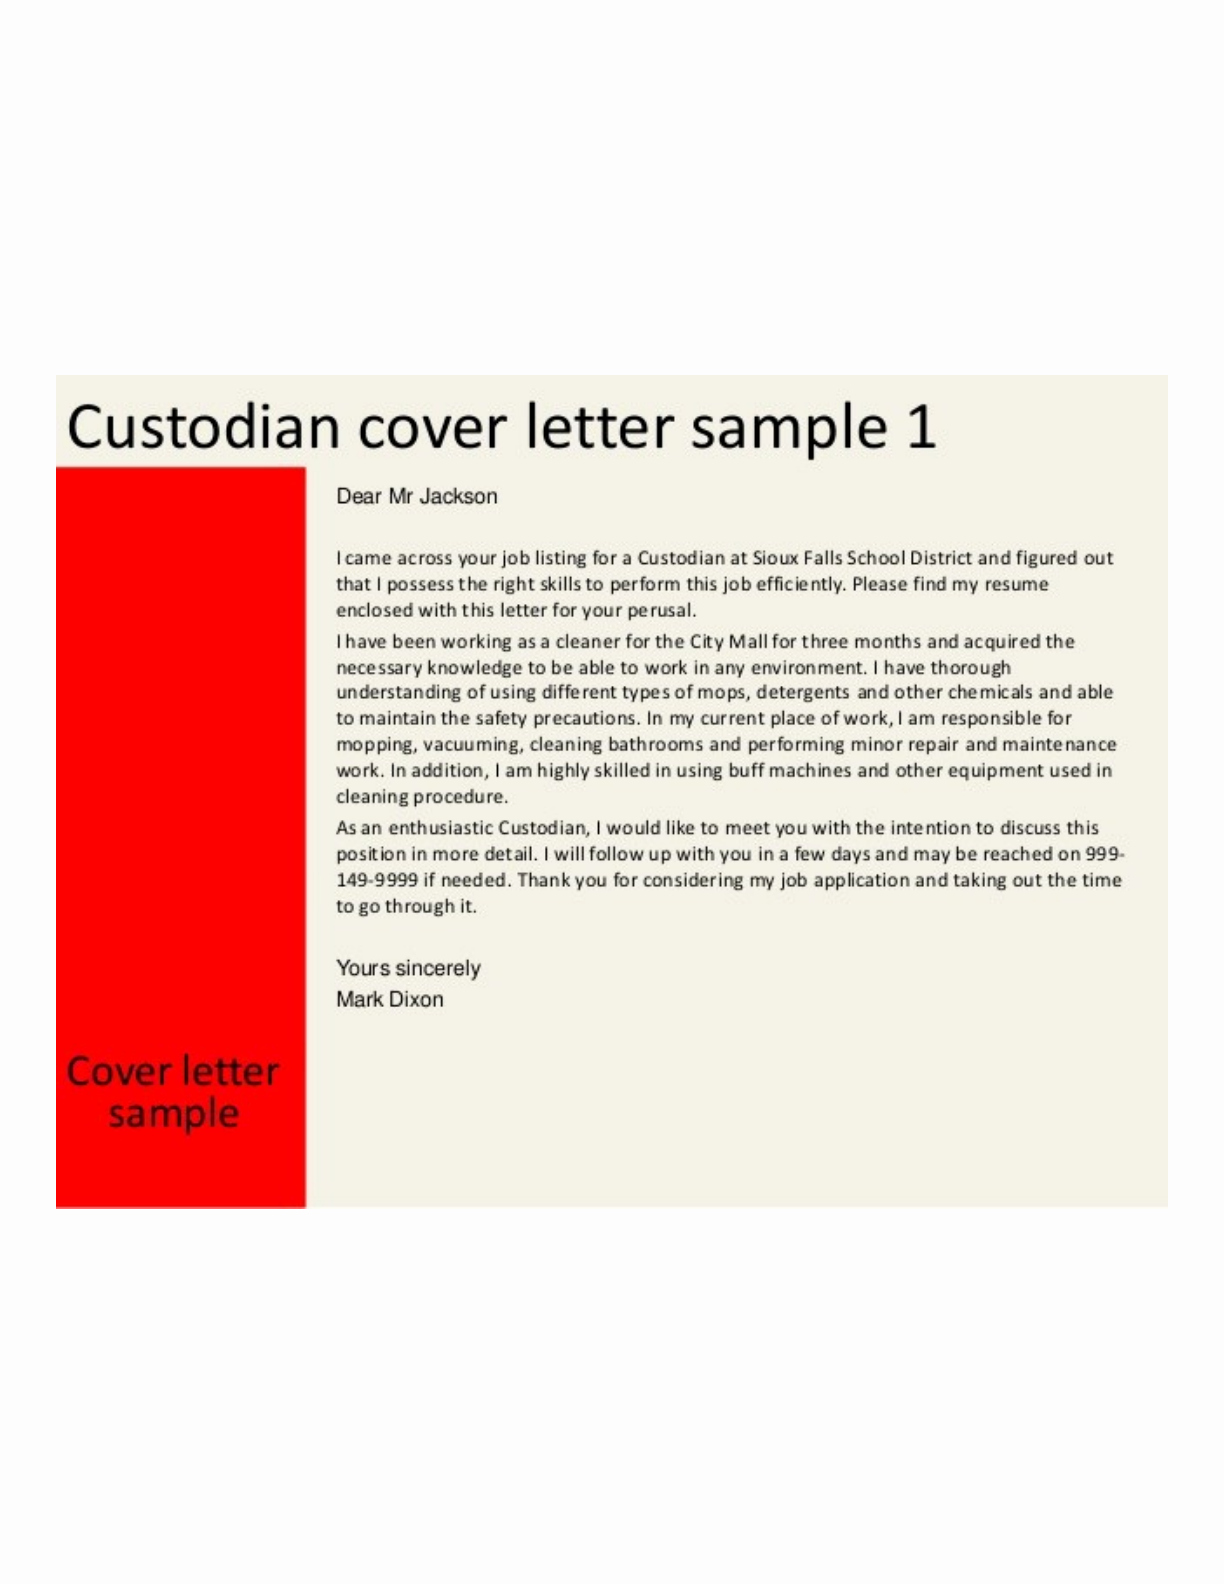 Basic Custodian Cover Letter Samples and Templates